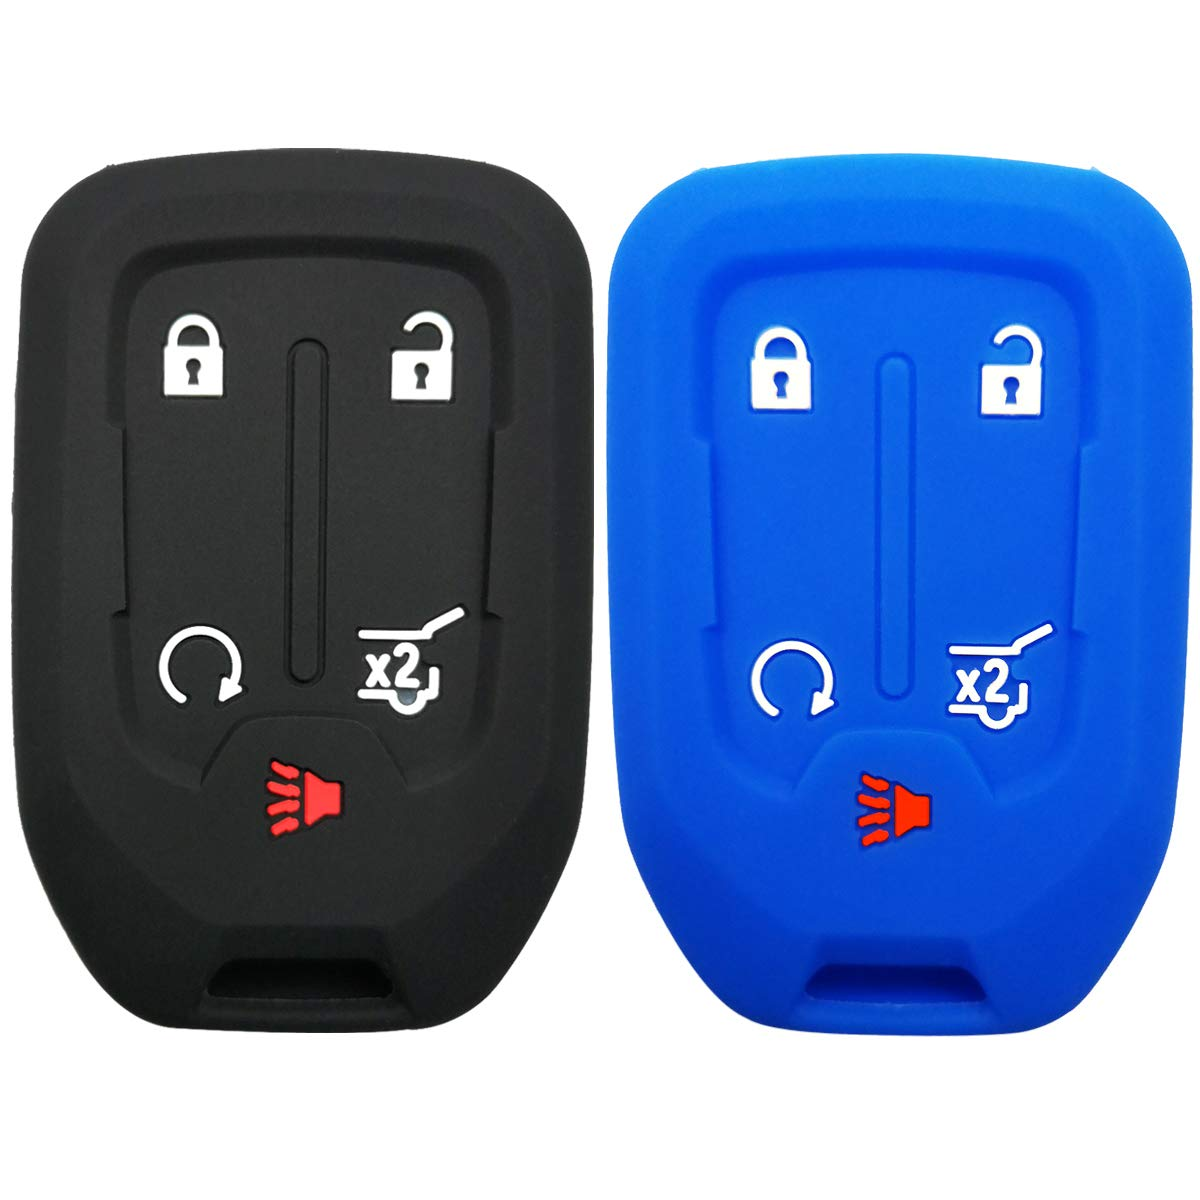 2Pcs Coolbestda Rubber Key Fob Remote Case Cover Keyless Entry Holder Shell for GMC Acadia Terrain Yukon Chevrolet Suburban Tahoe HYQ1AA 13584502 1551A-AA